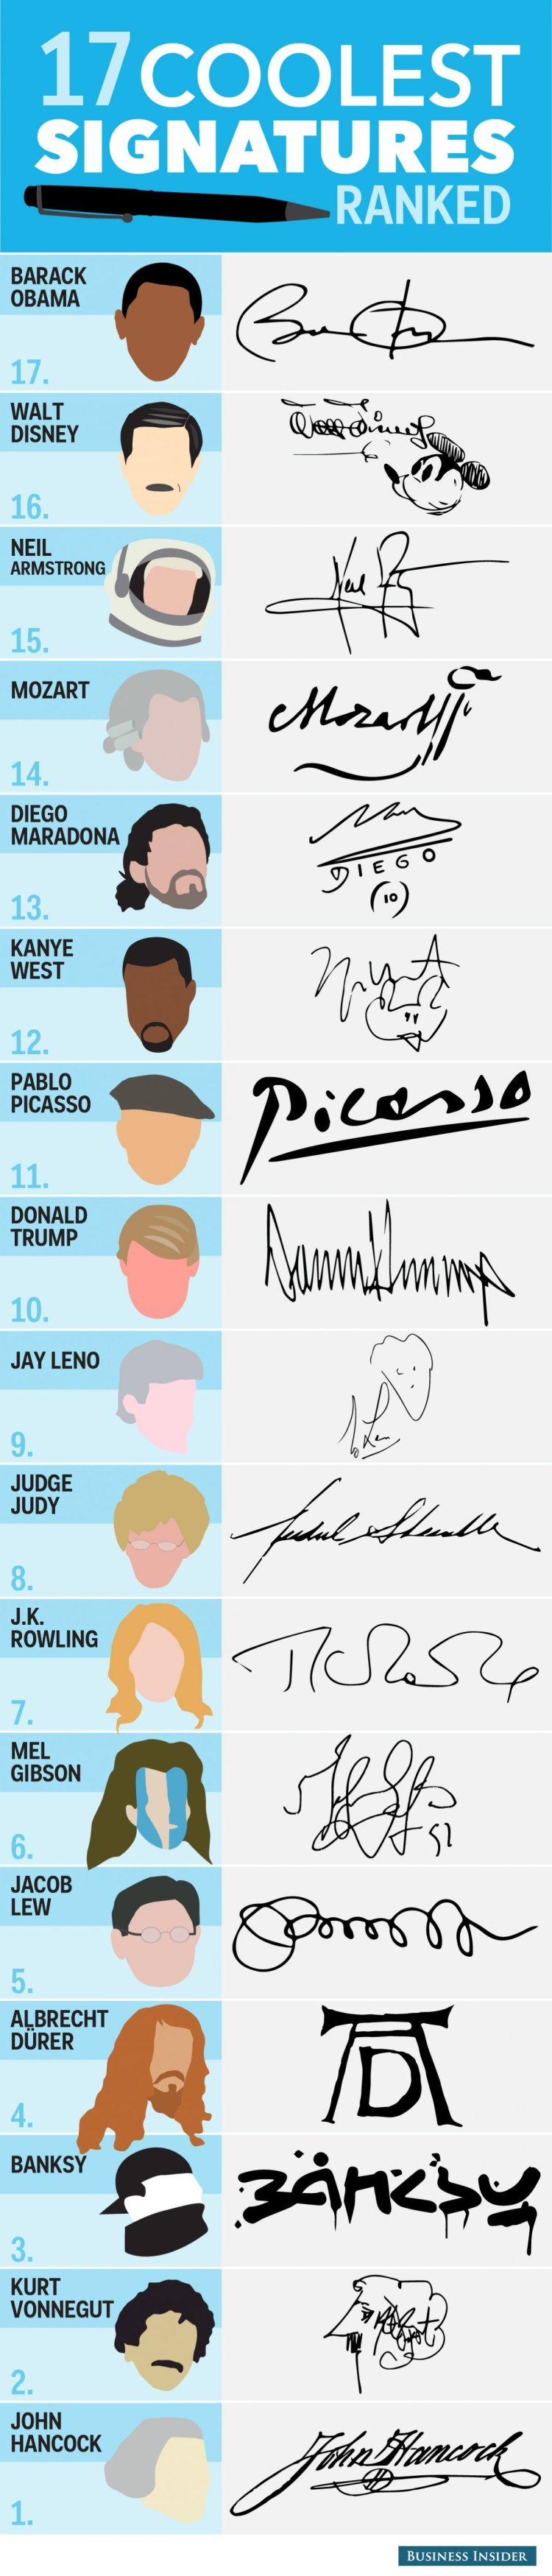 17CoolestSignatures_